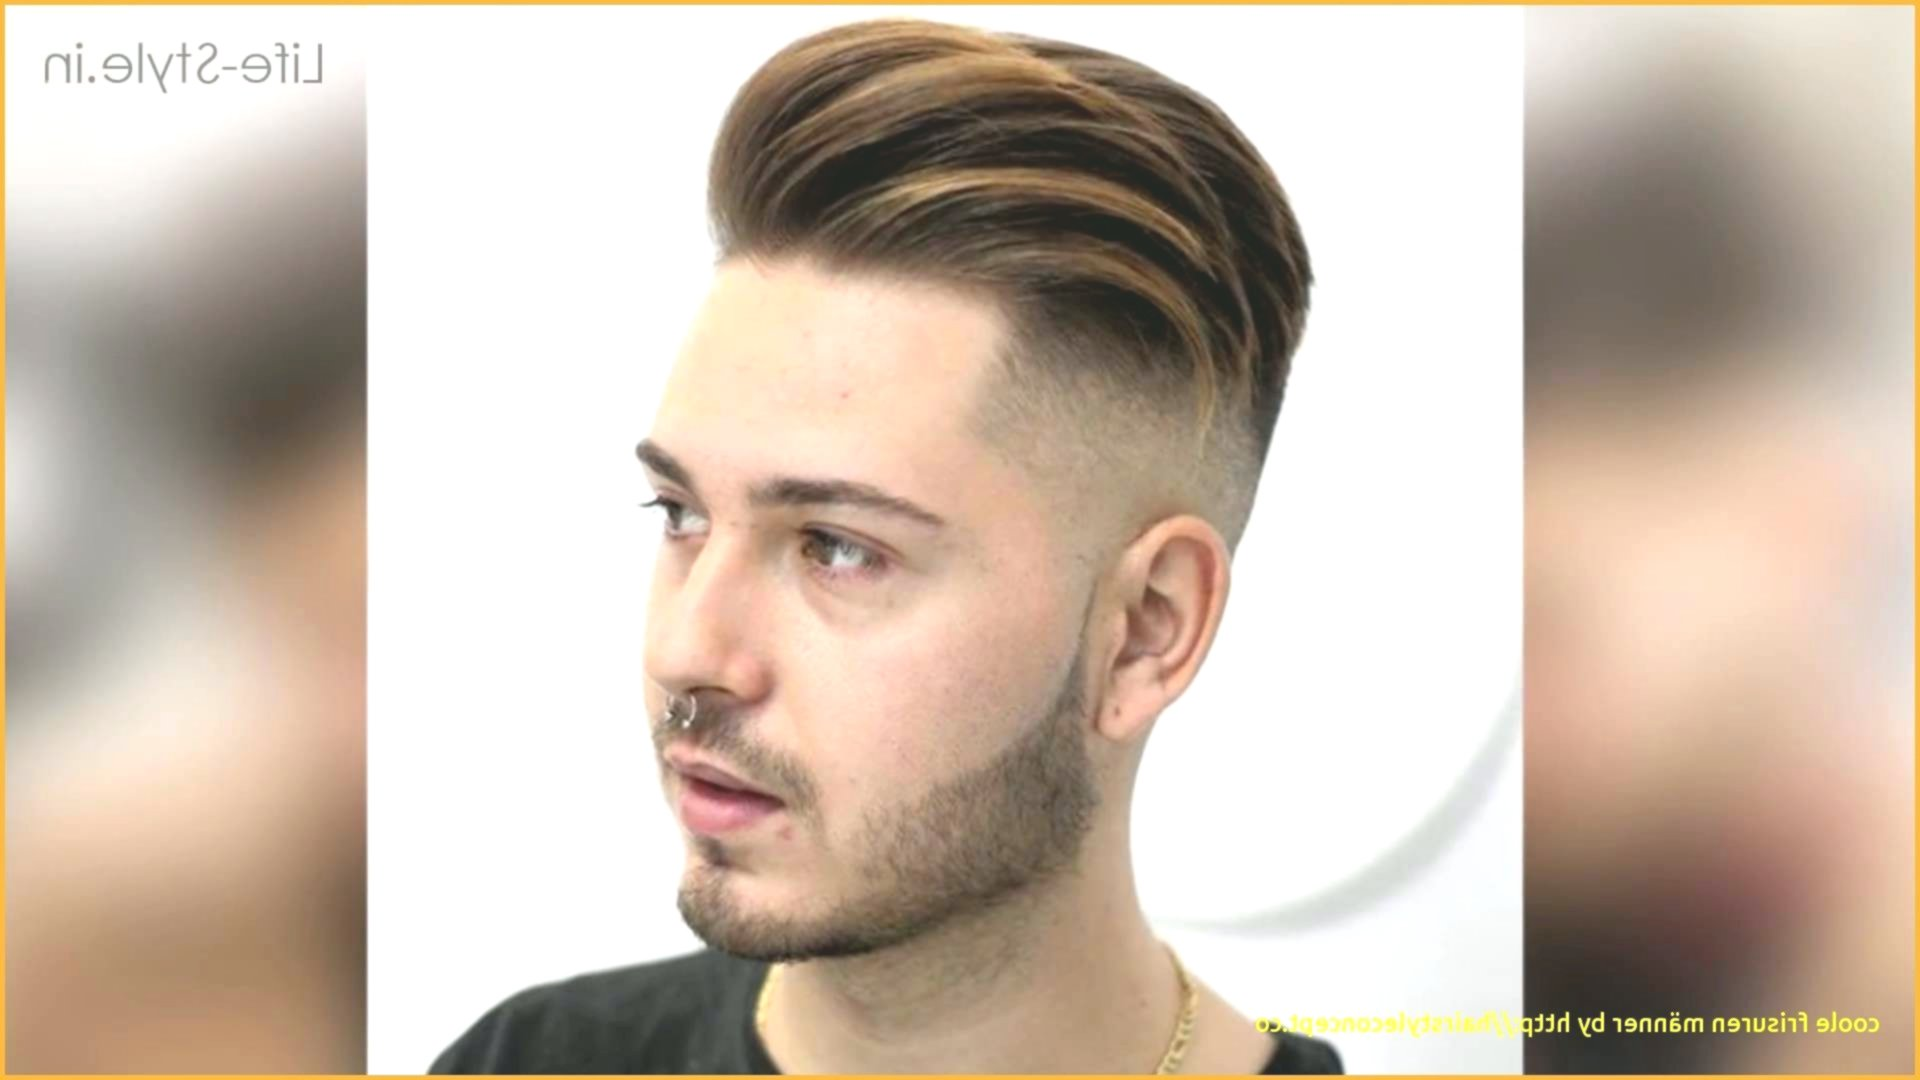 Sensational cute short hairstyles with sidecut online fresh short hairstyles with sidecut concepts